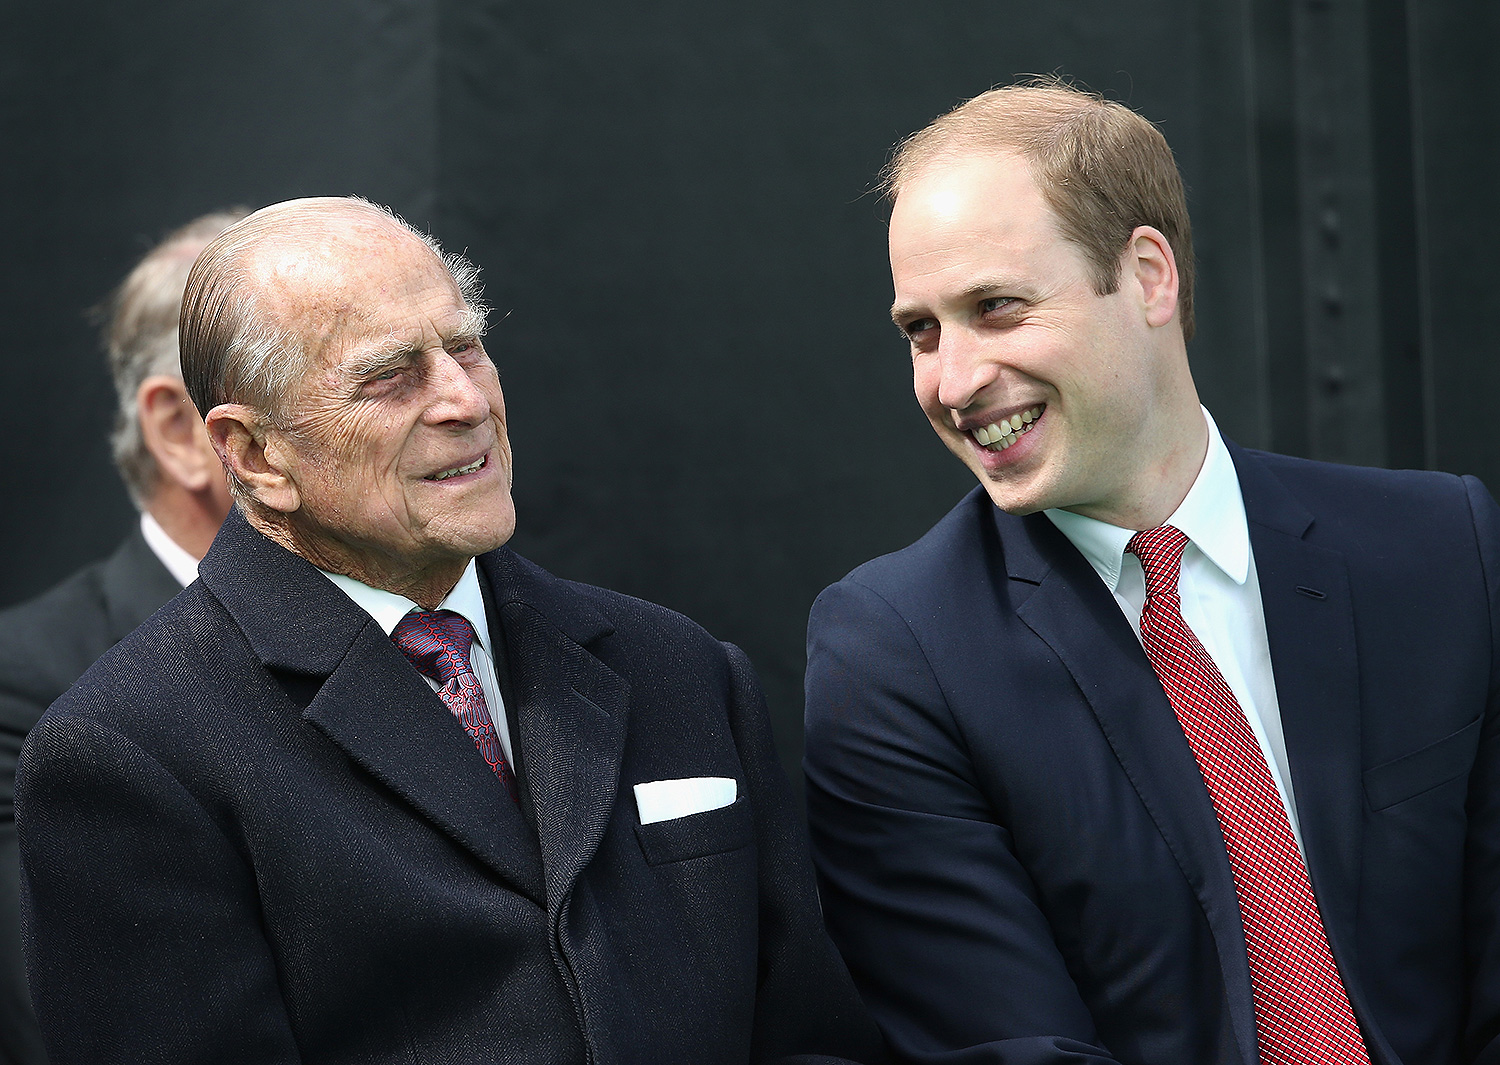 Prince William No Longer Appearing at BAFTAs Following the Death of Grandfather Prince Philip